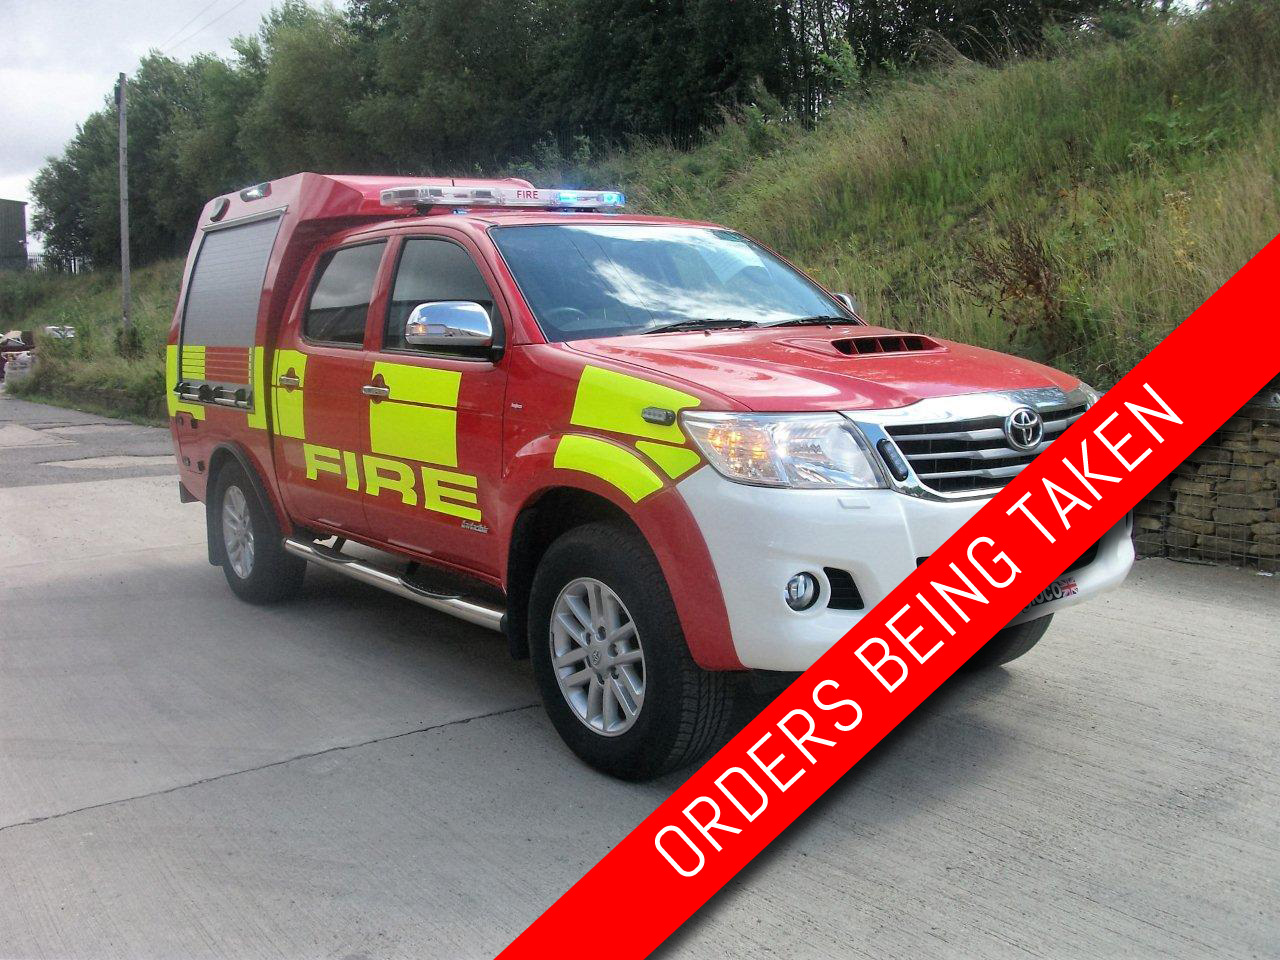 Evems.com - Fire Engines For Sale - 2014 Toyota Hilux RIV